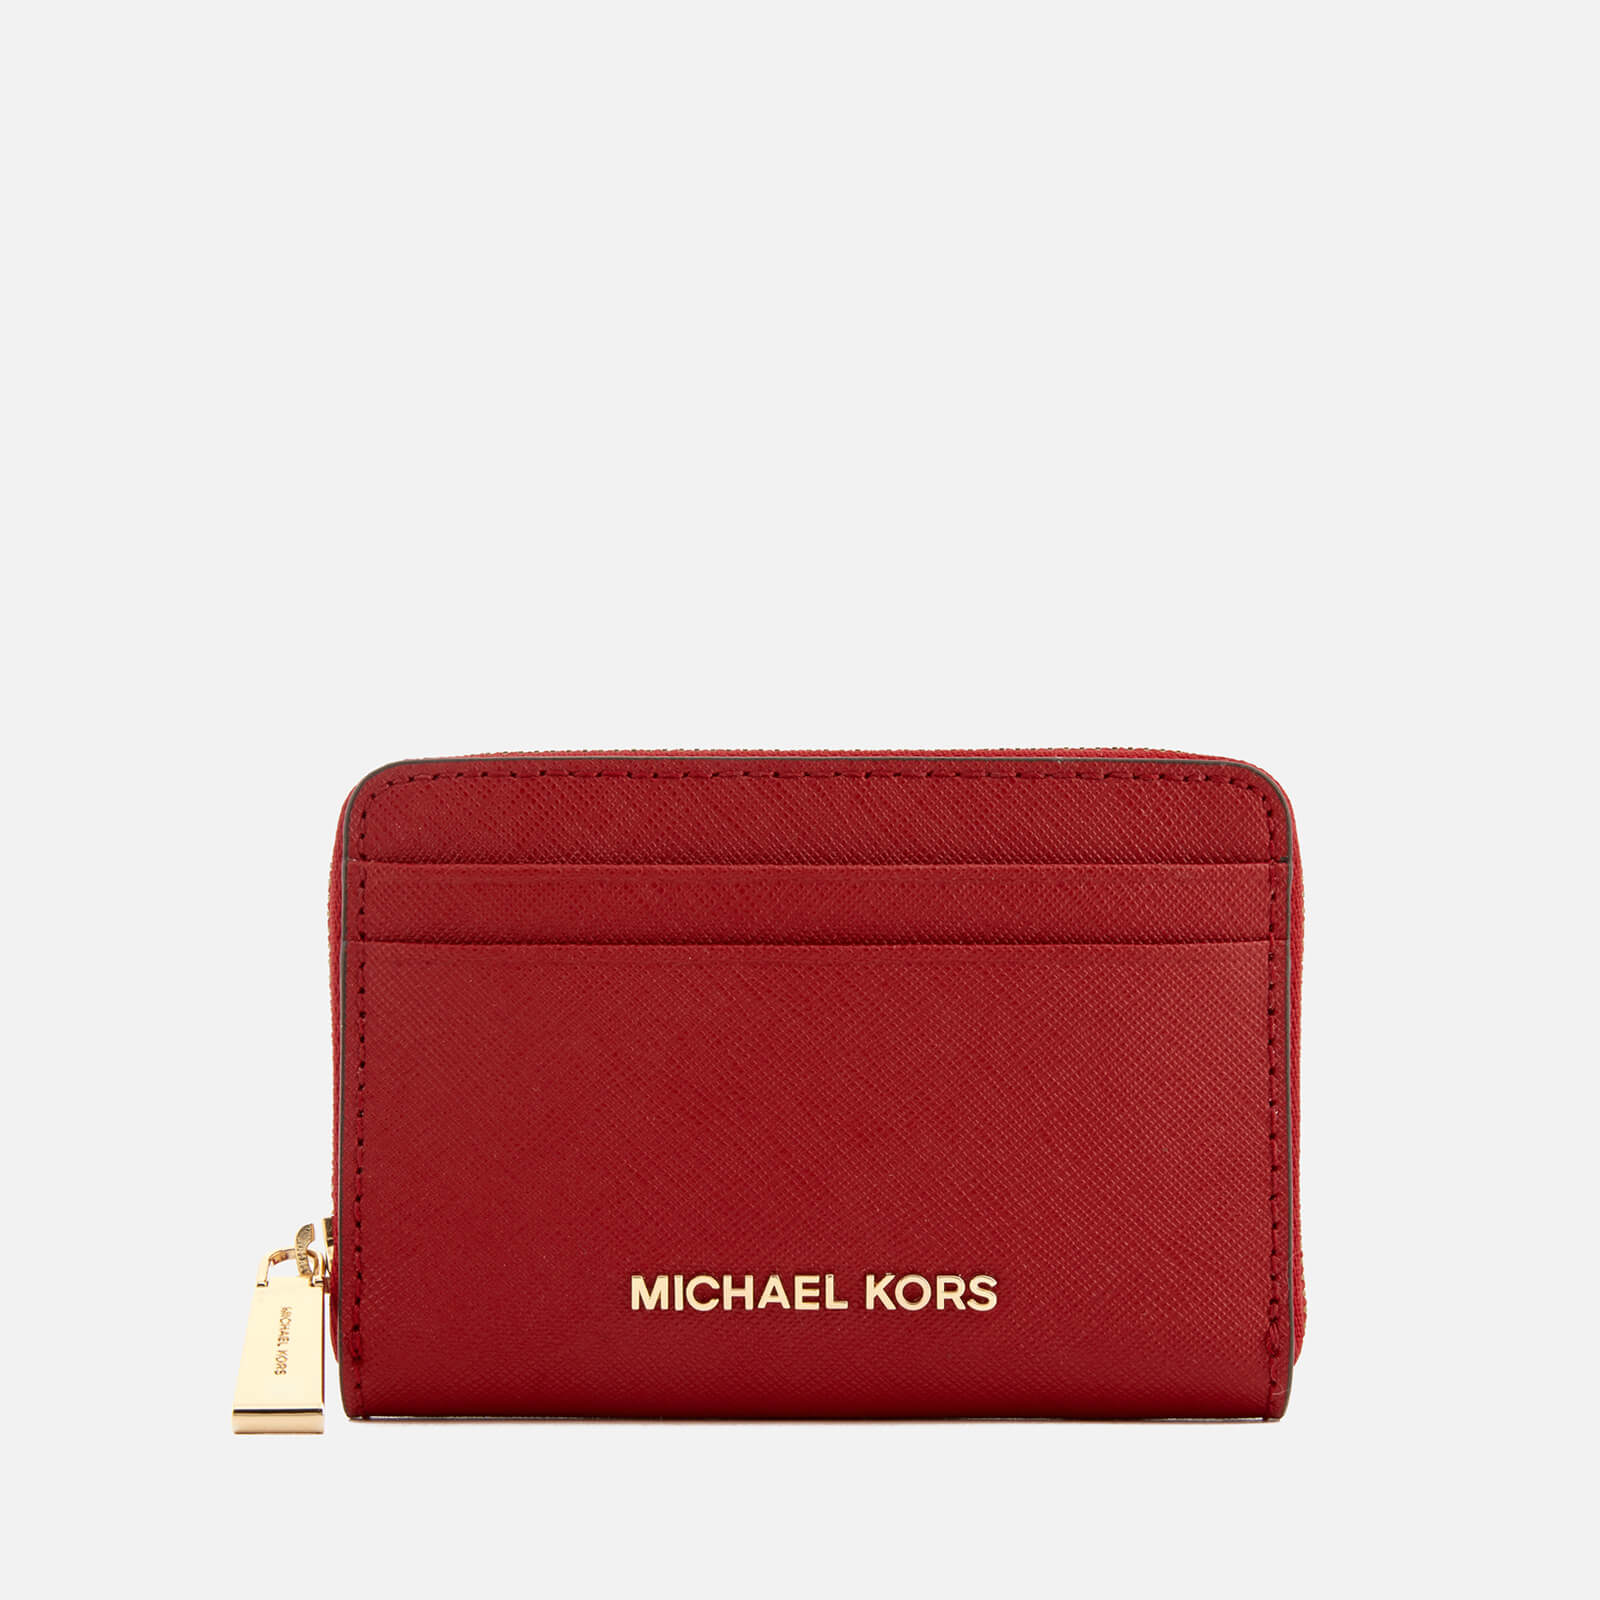 9ceab9f73d0368 MICHAEL MICHAEL KORS Women's Money Pieces Zip Around Card Case - Bright Red  - Free UK Delivery over £50